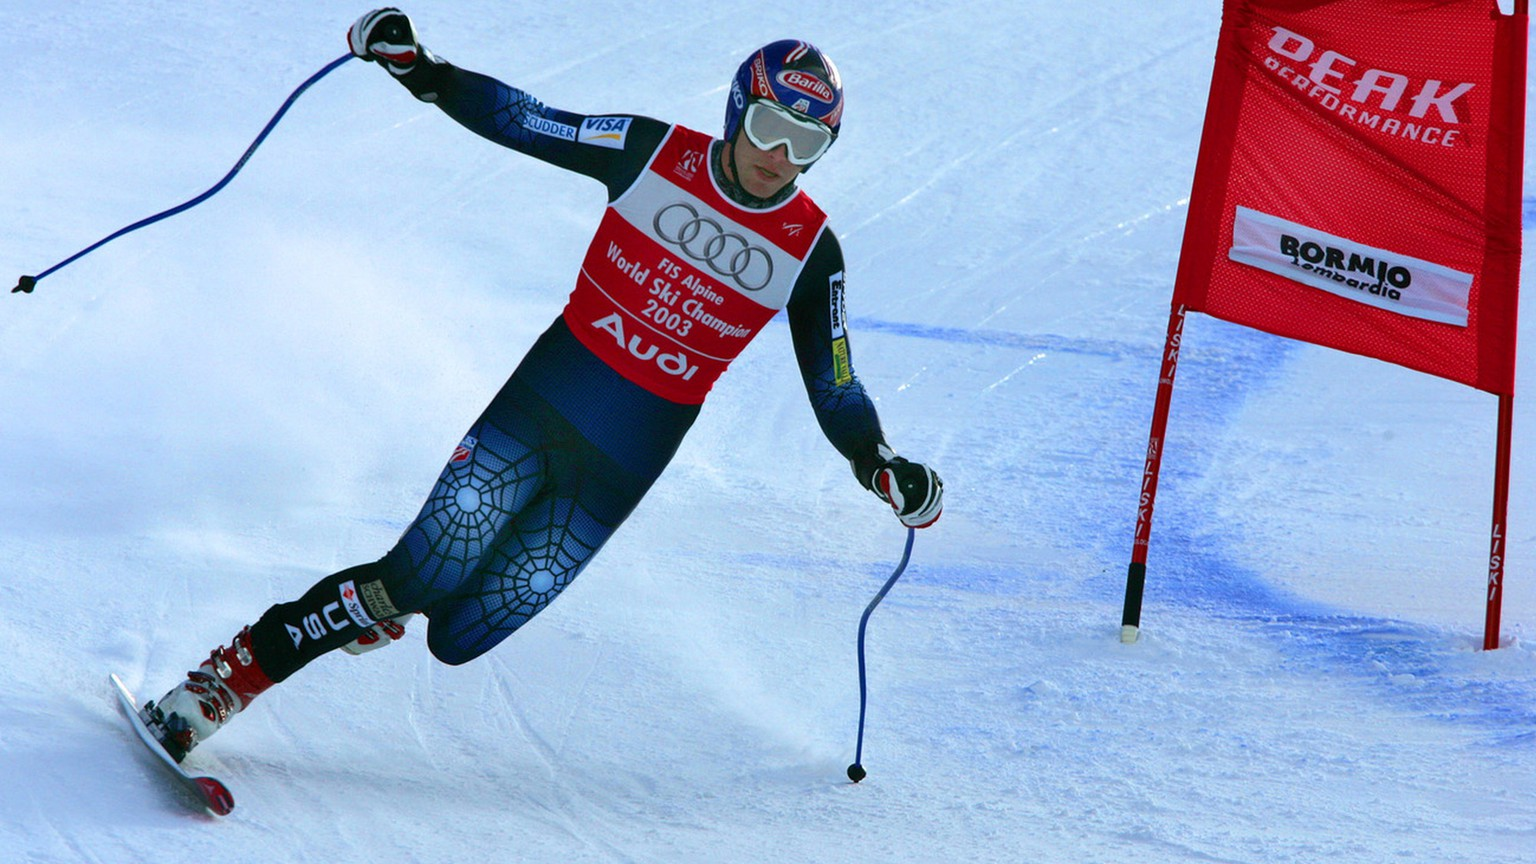 Bode Miller of the United States makes a turn on one ski during the Downhill portion of the Men's Combined at the World Alpine Ski Championships in Bormio, Italy,  Thursday Feb. 3, 2005. Miller lost a ski near the top of the course and skied most of the way down on one ski before falling down near the bottom. (KEYSTONE/AP Photo/Diether Endlicher)